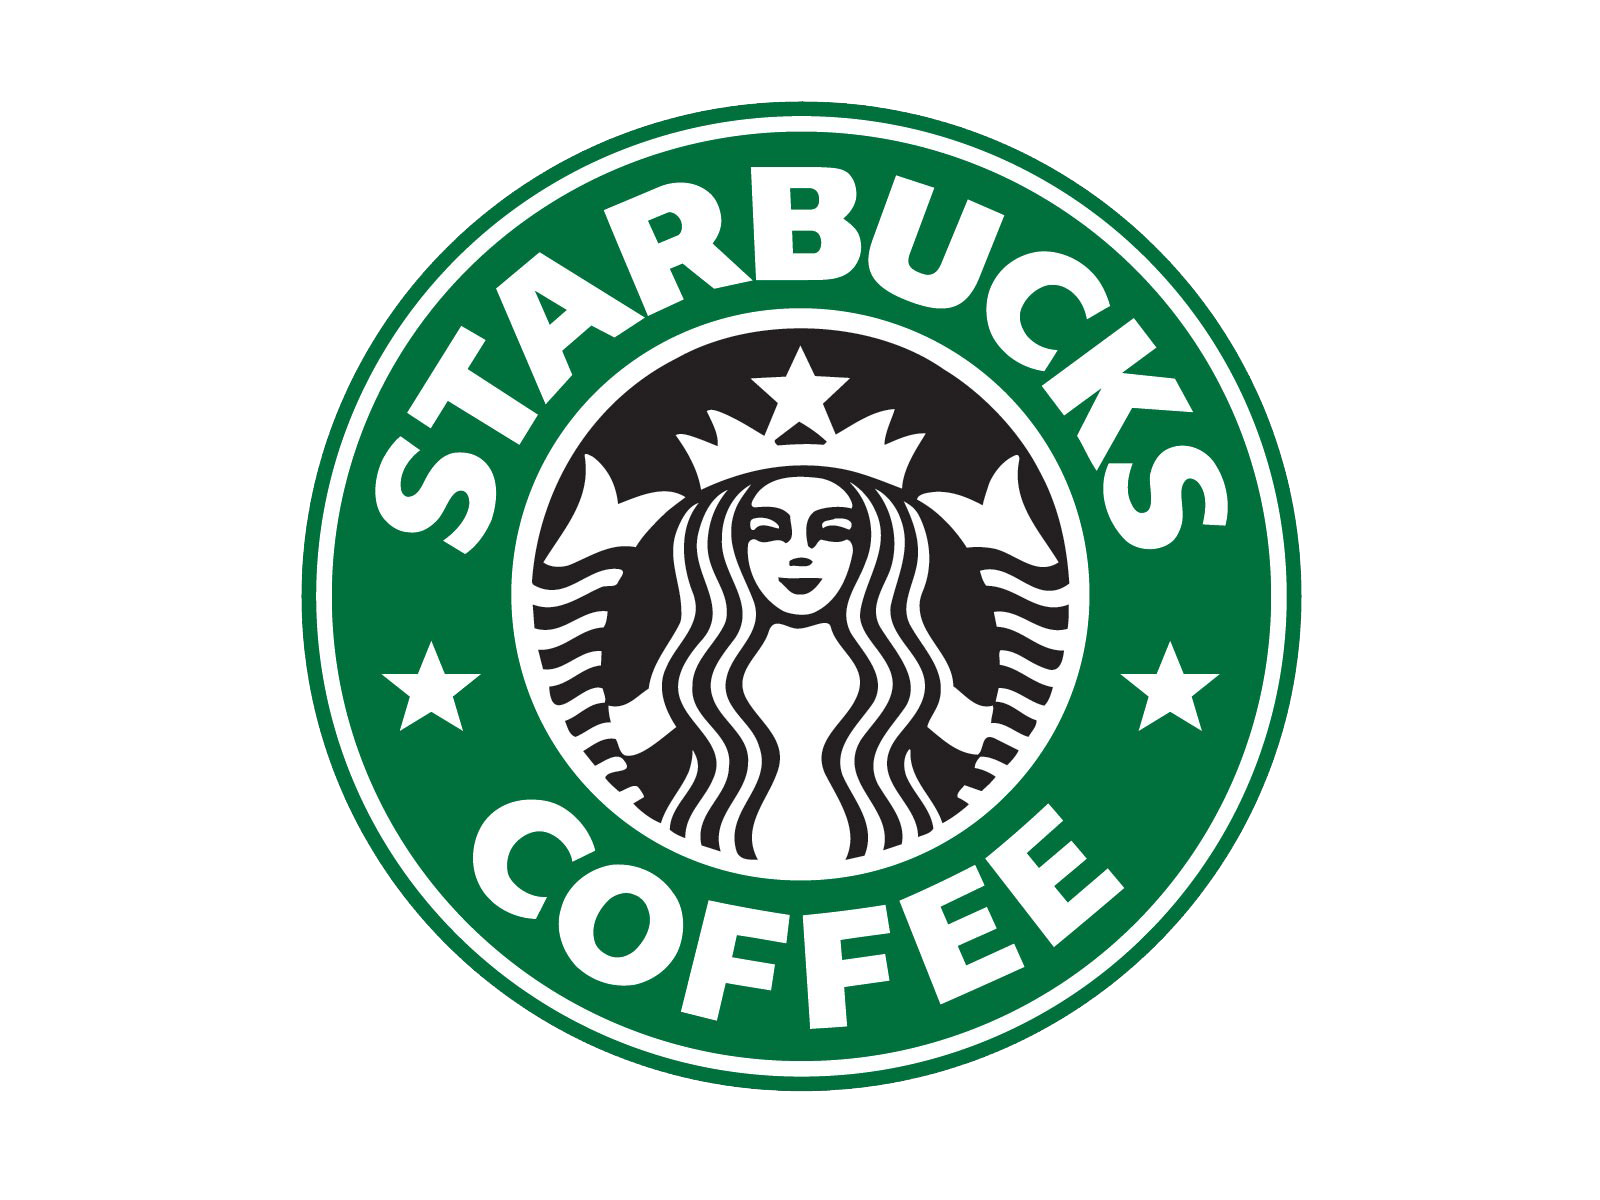 Coffee Frappuccino Starbucks Logo Cafe Campus PNG Image